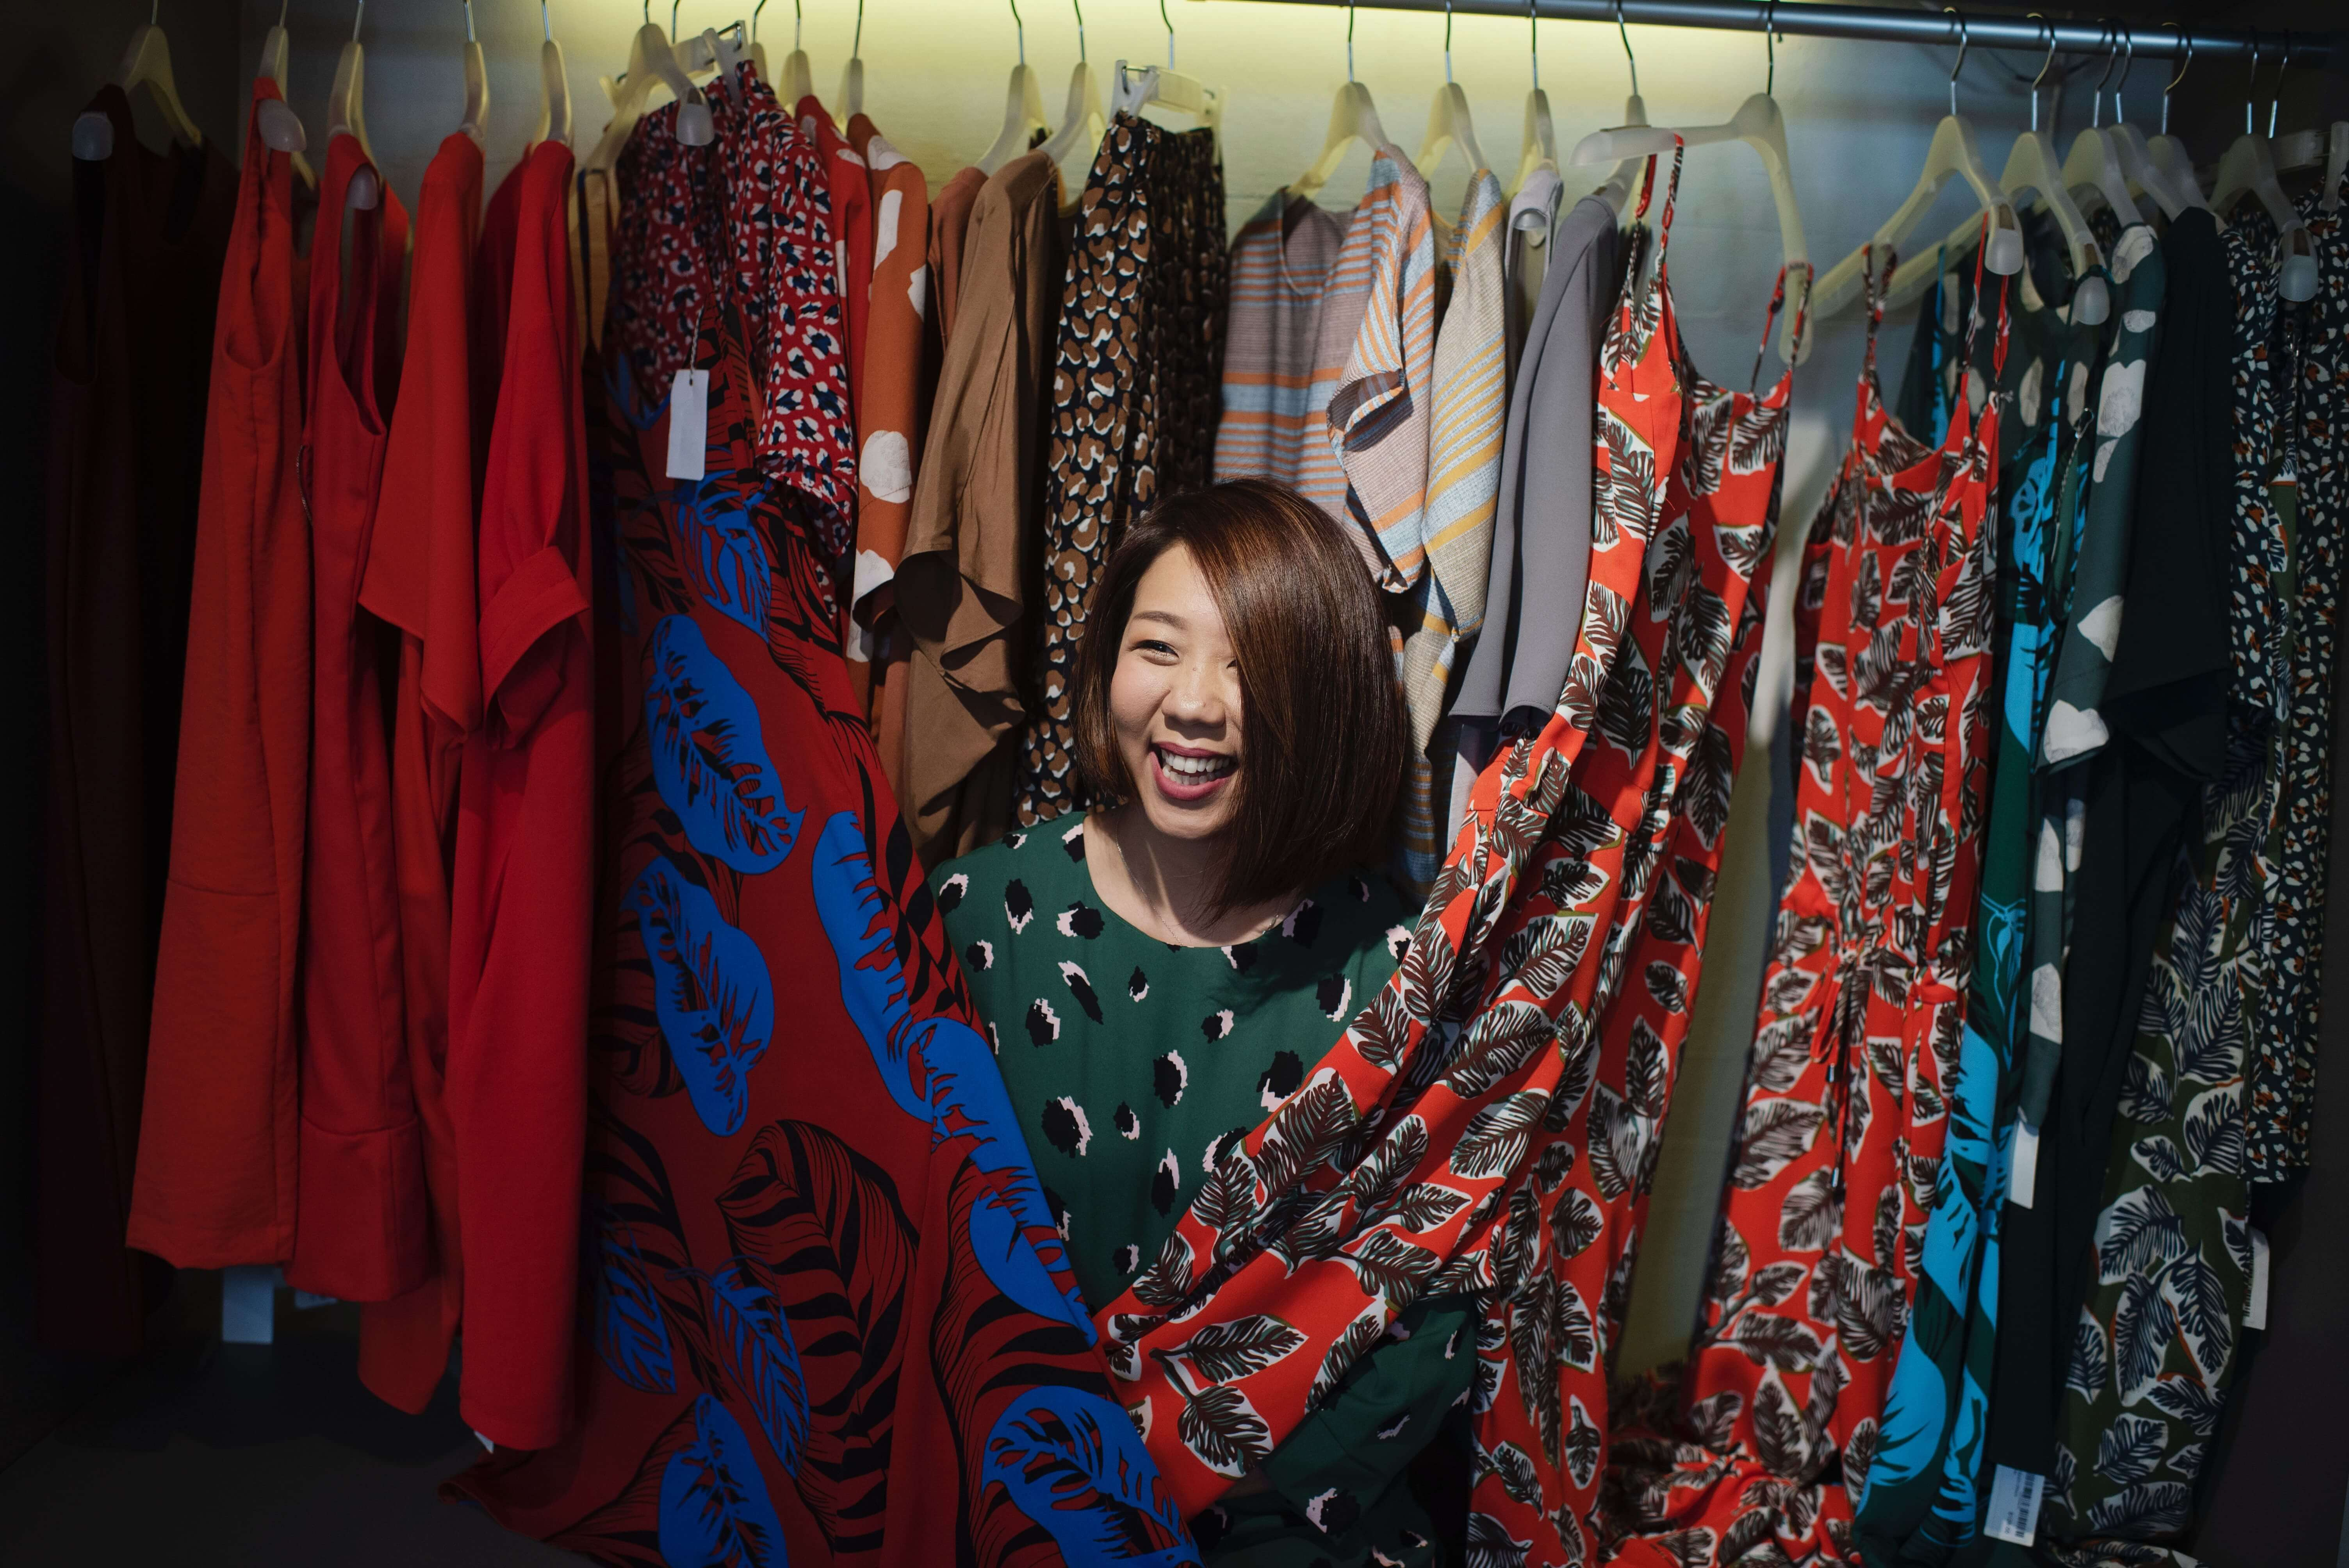 An entrepreneur in her small business shop passionate about her crafted clothes